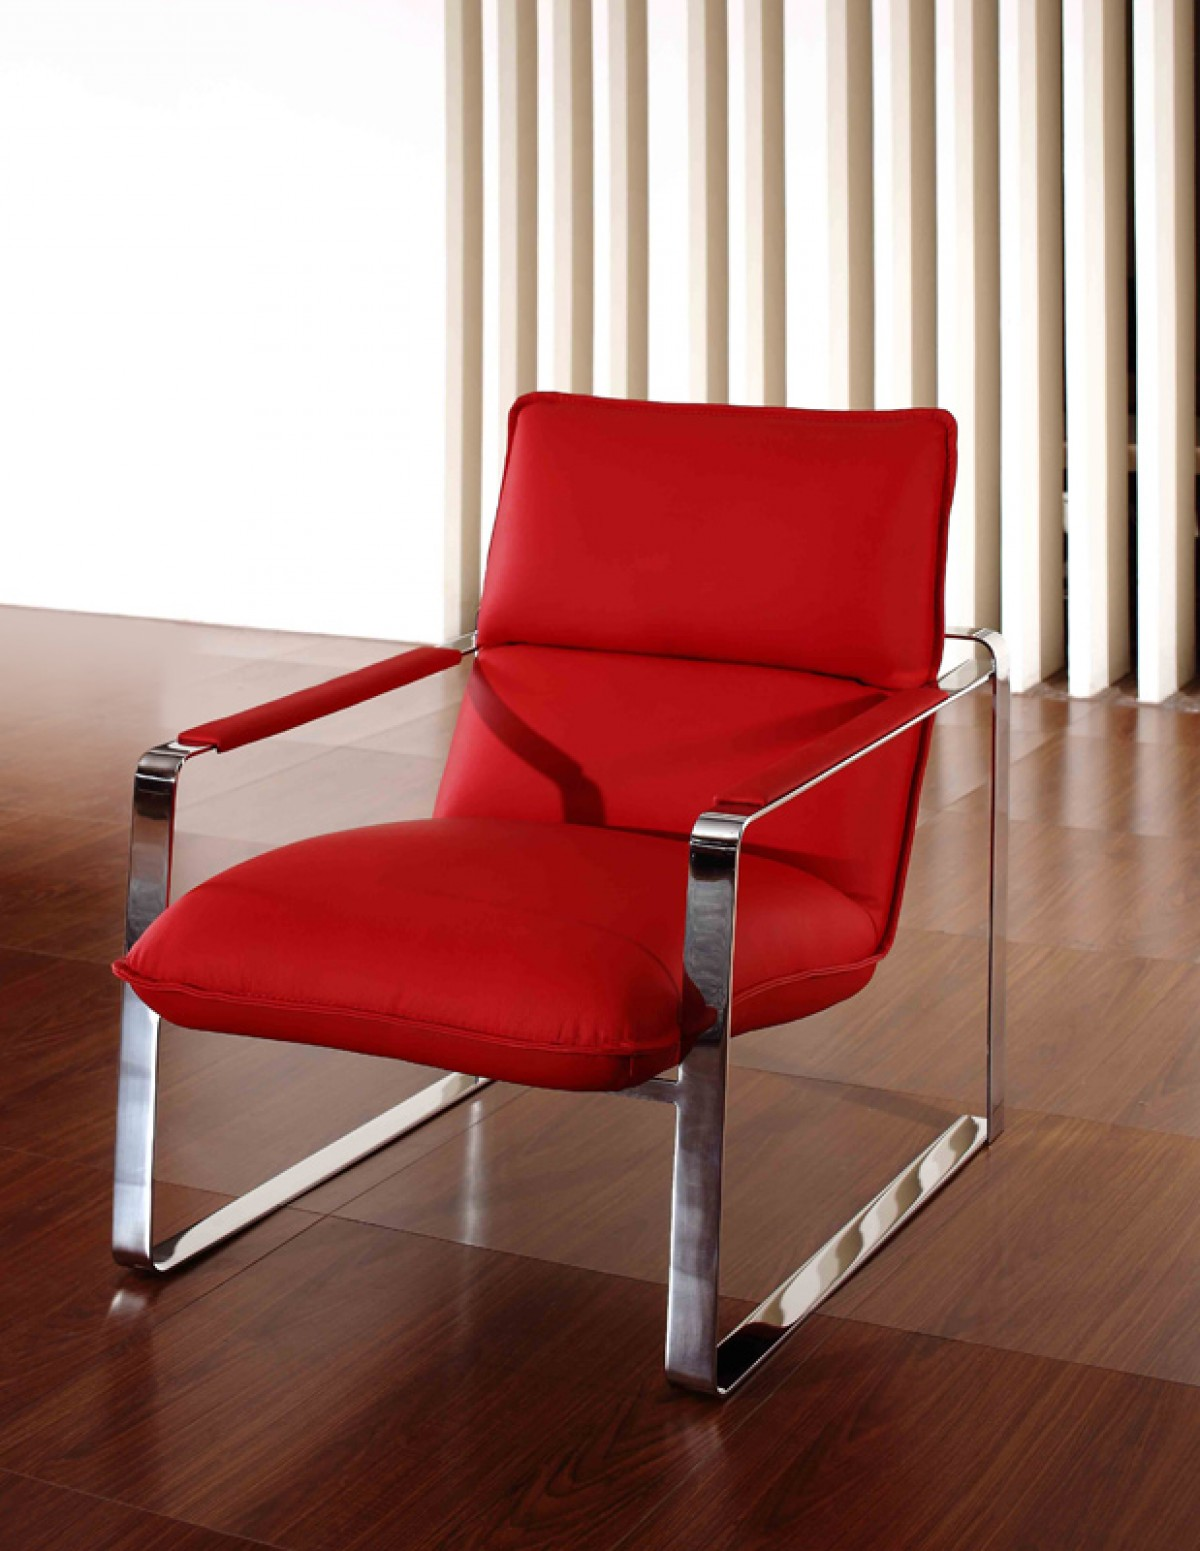 Modern Red Leather Lounge Chair With Steel Frame Oklahoma Oklahoma VIG Dunn Red